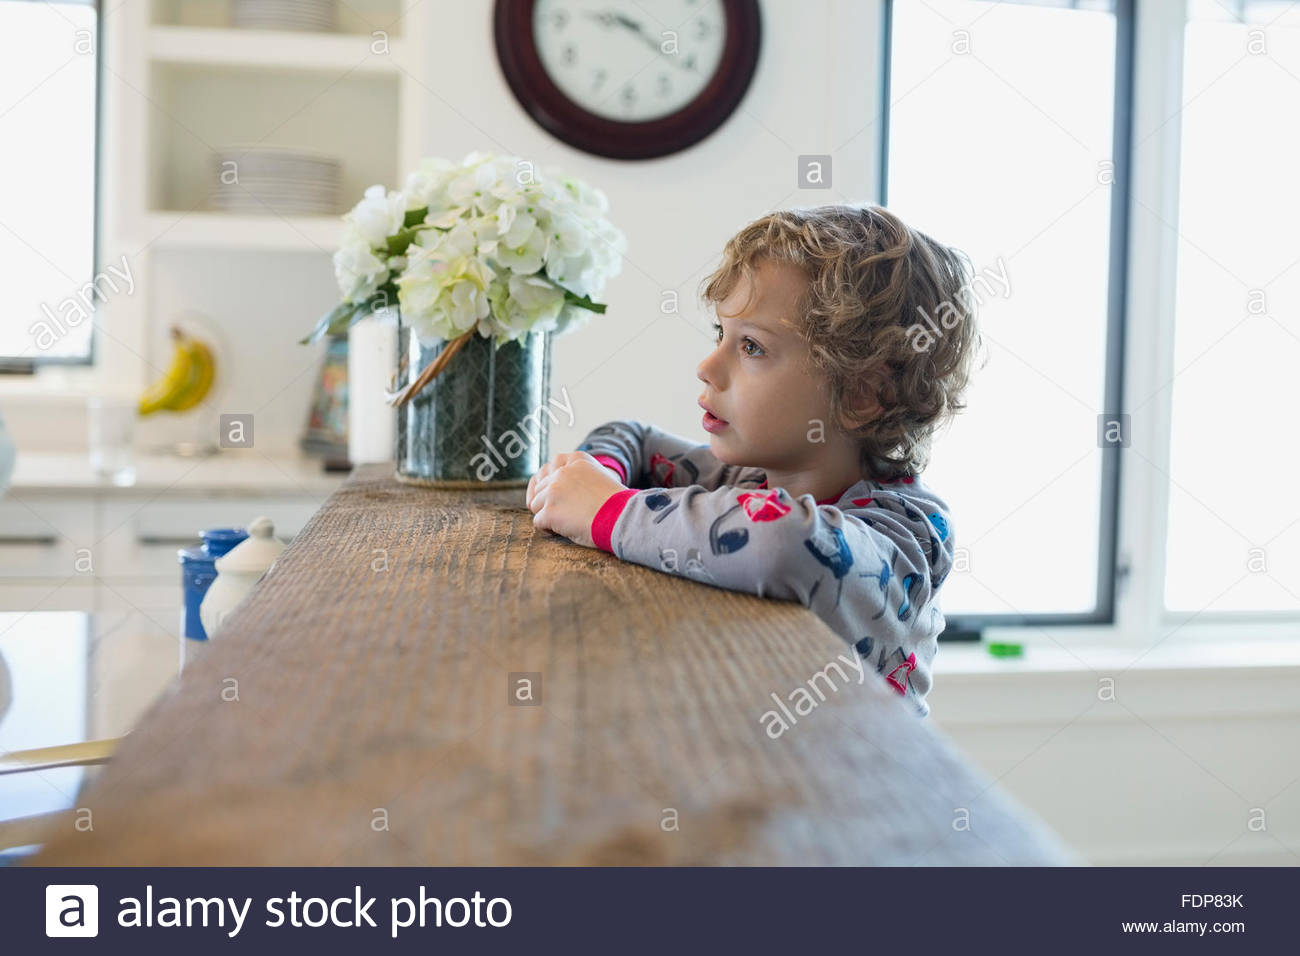 Boy in pajamas leaning on kitchen breakfast bar - Stock Image